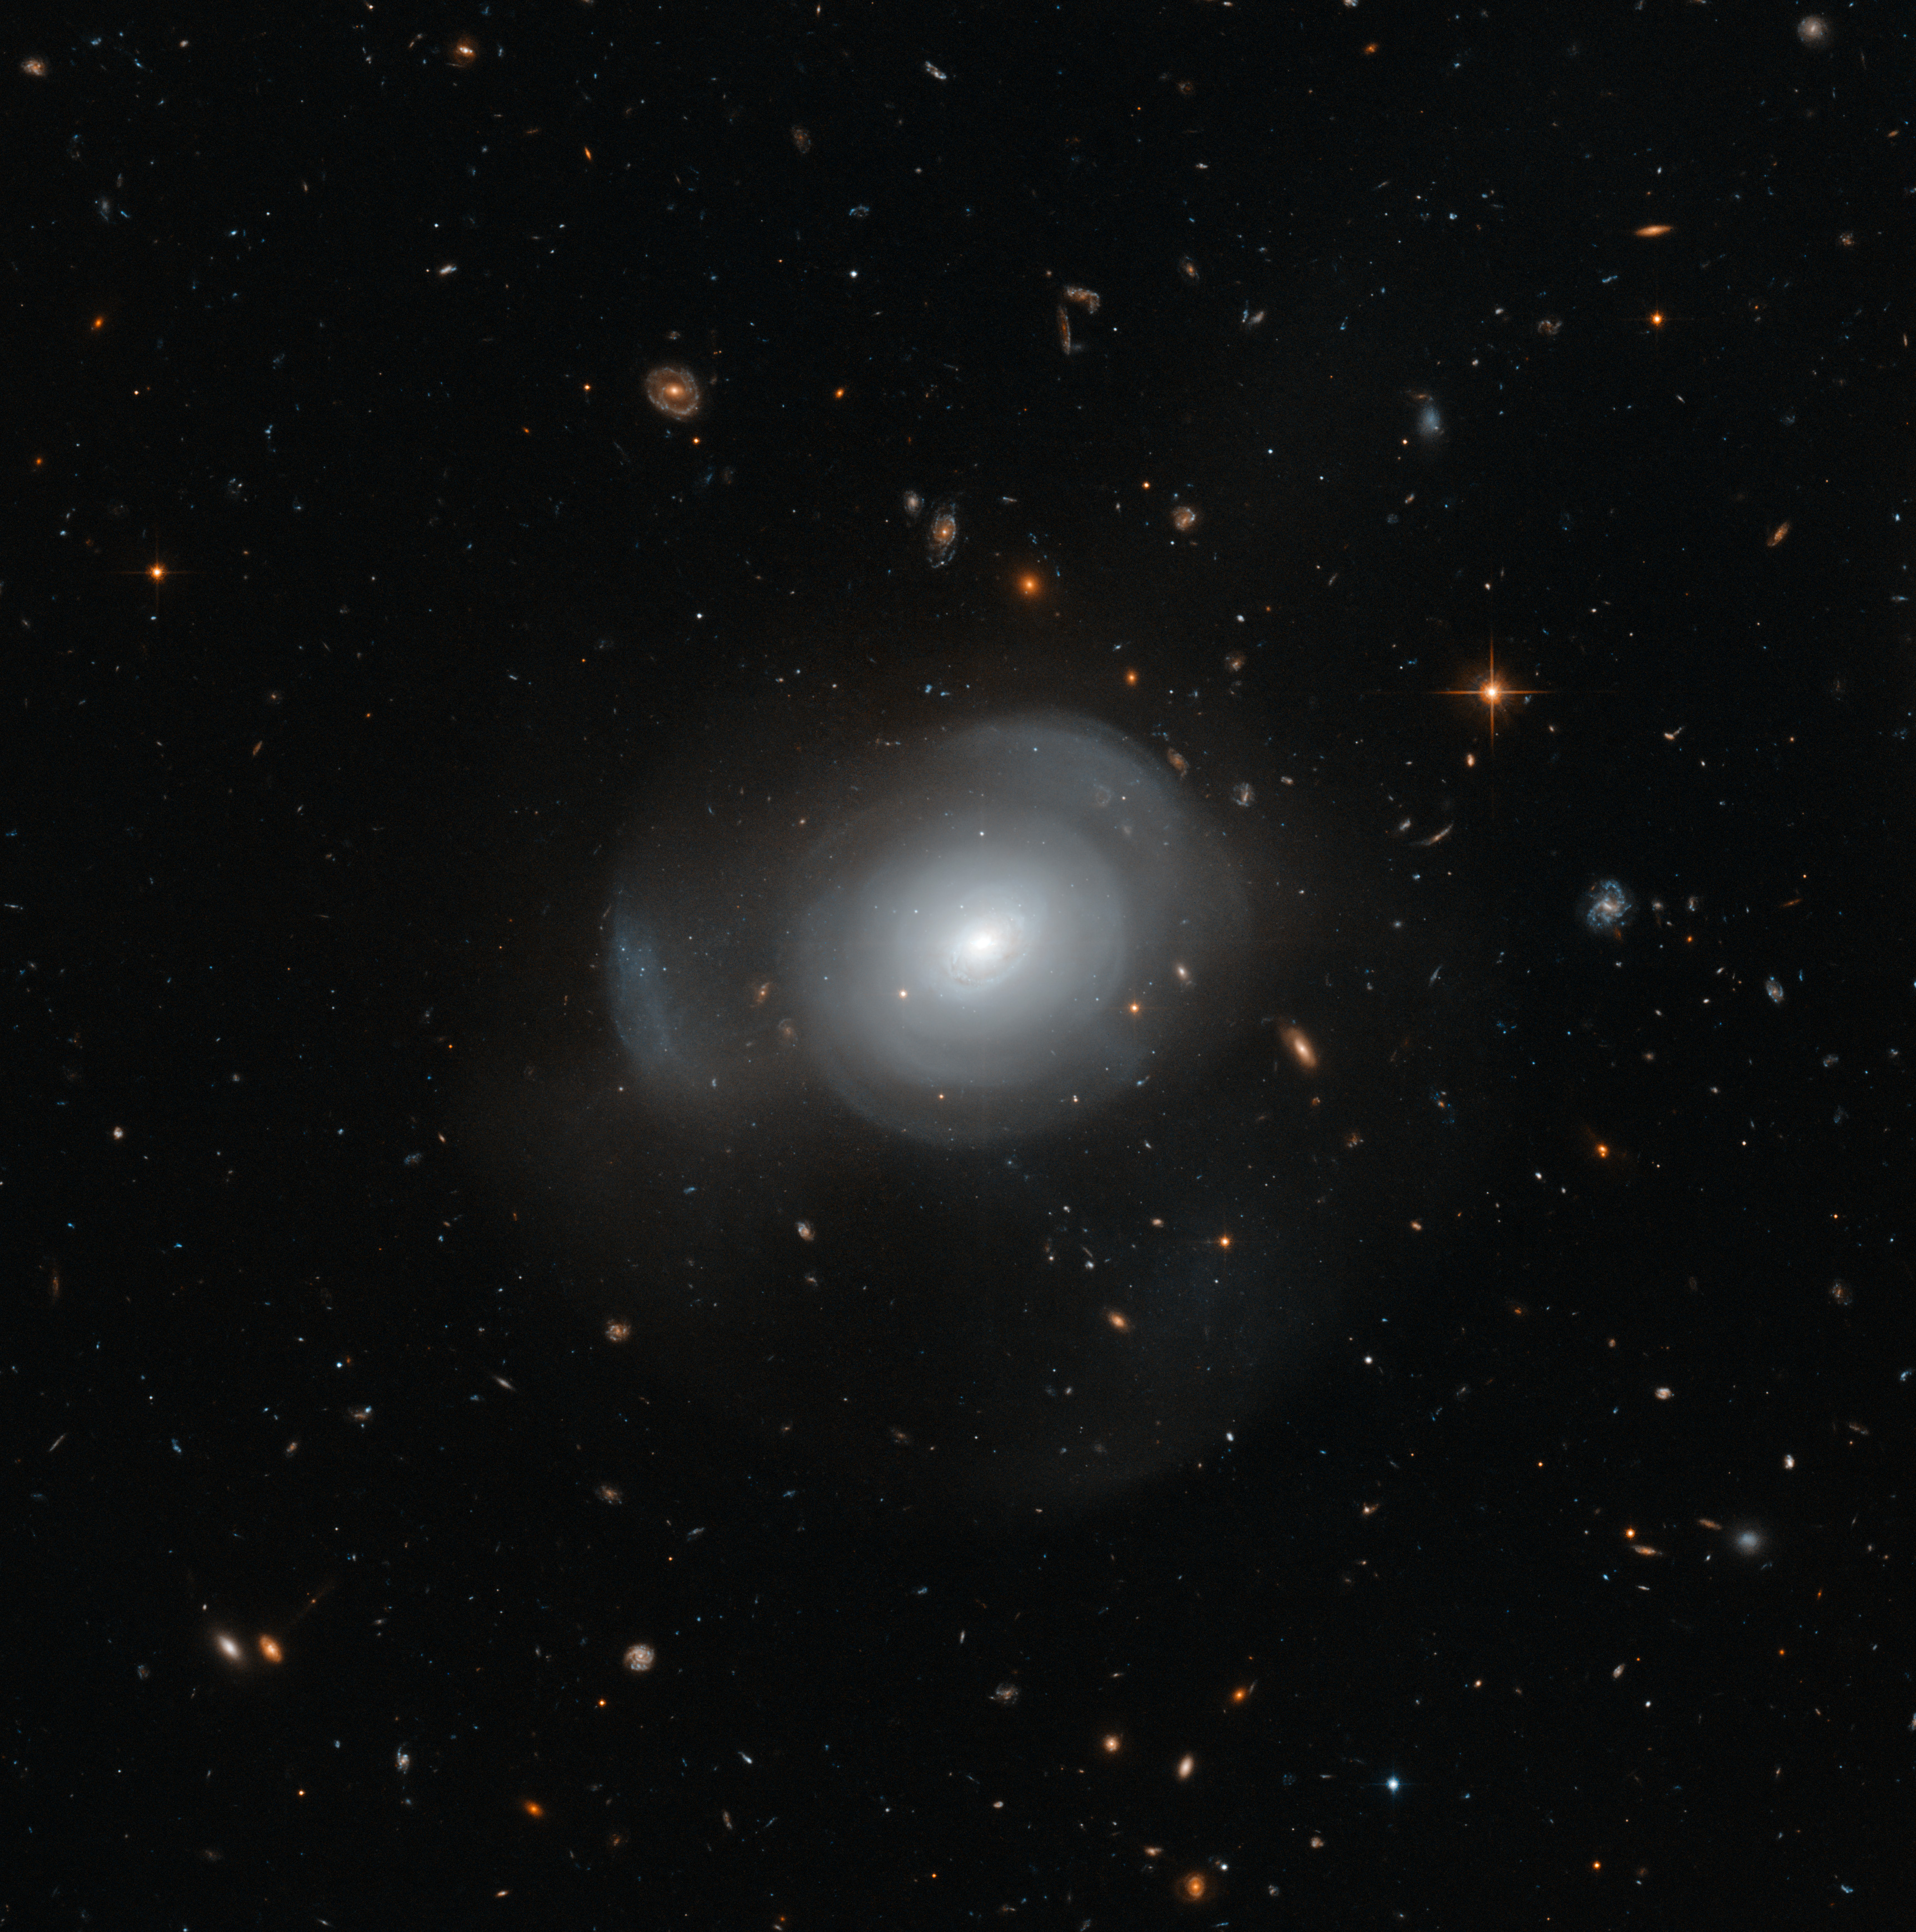 Hubble image of PGC 6240 | ESA/Hubble